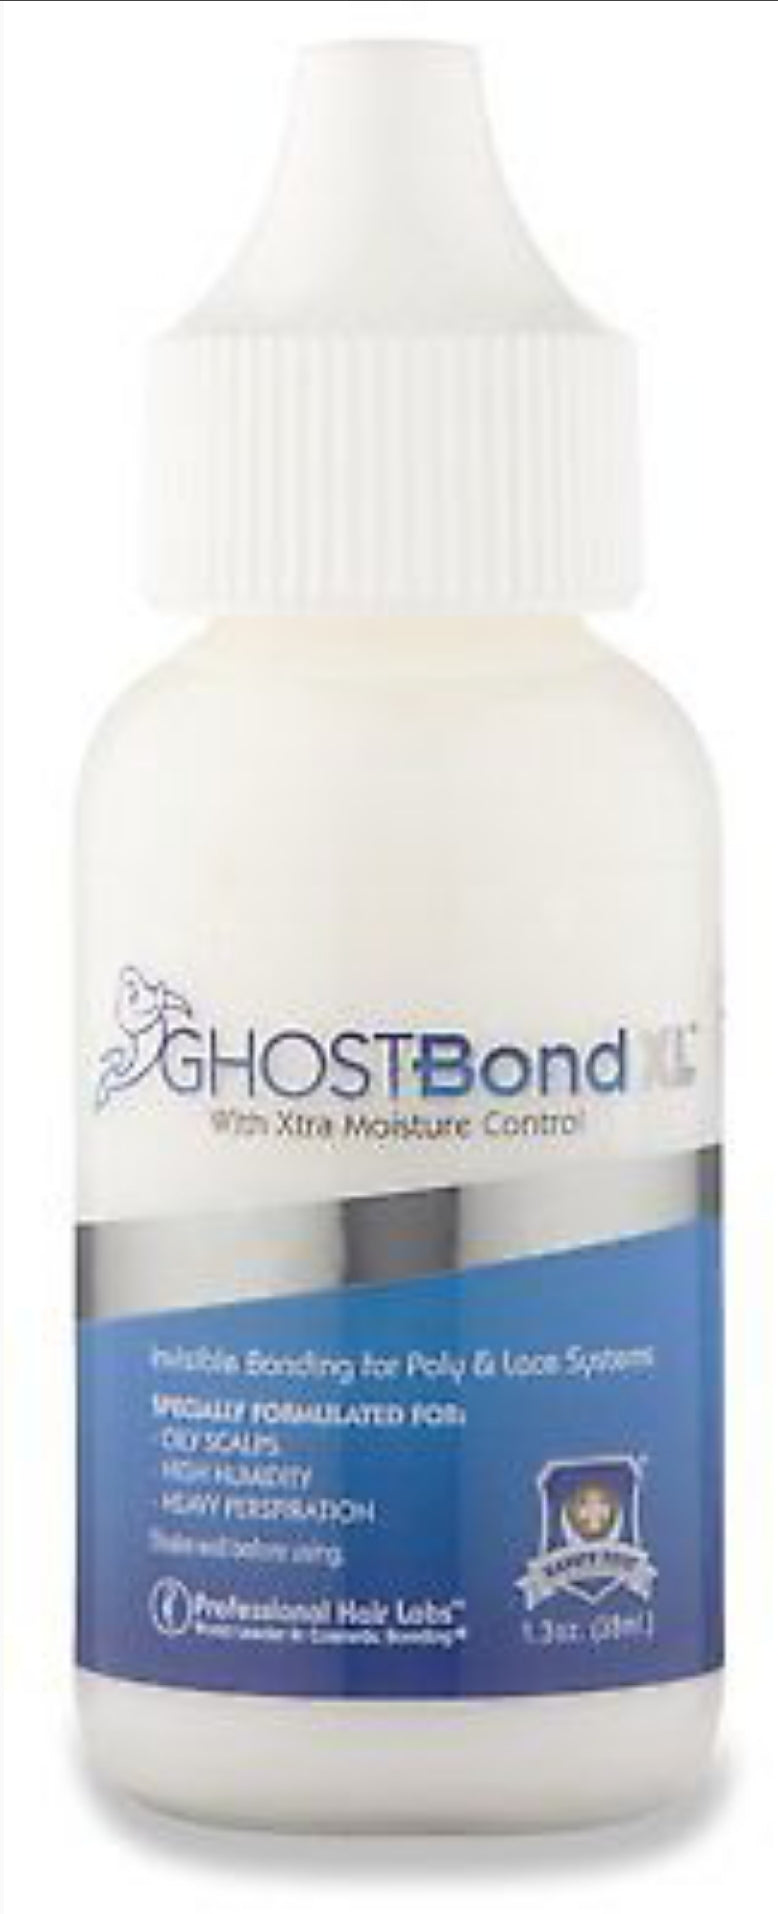 Ghost Bond XL